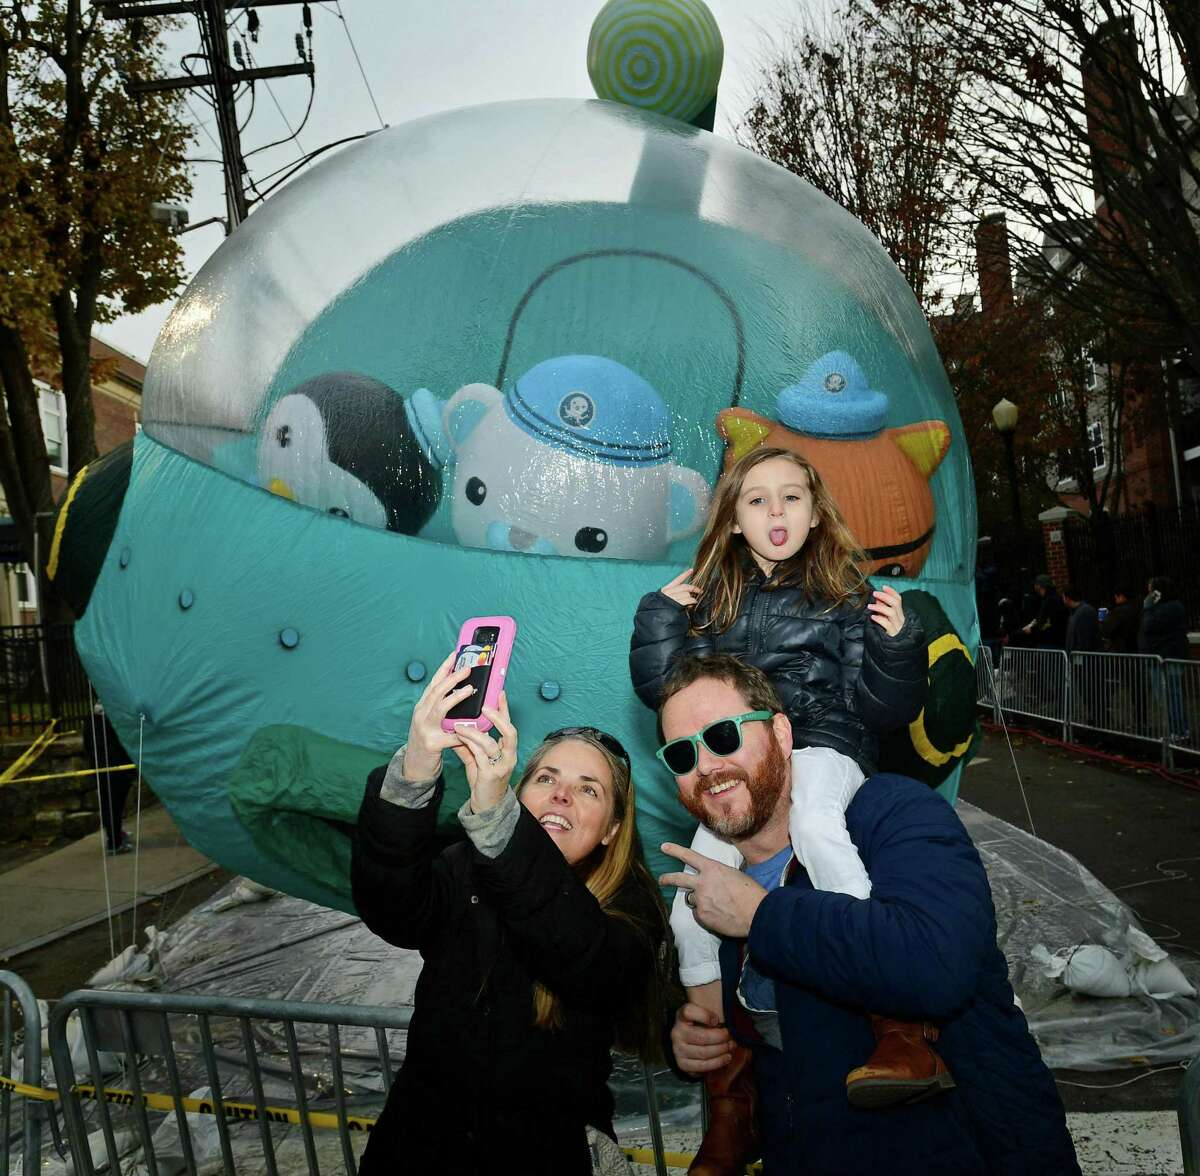 Fairfield residents Bridget Grabell, Brian Grabell and their daughter, Sadie Grabell, 7, watch as Big Event Inc employees inflate parade balloons. Below, Big Event Inc employees Marilyn Cruz inflates a parade balloon during the event.